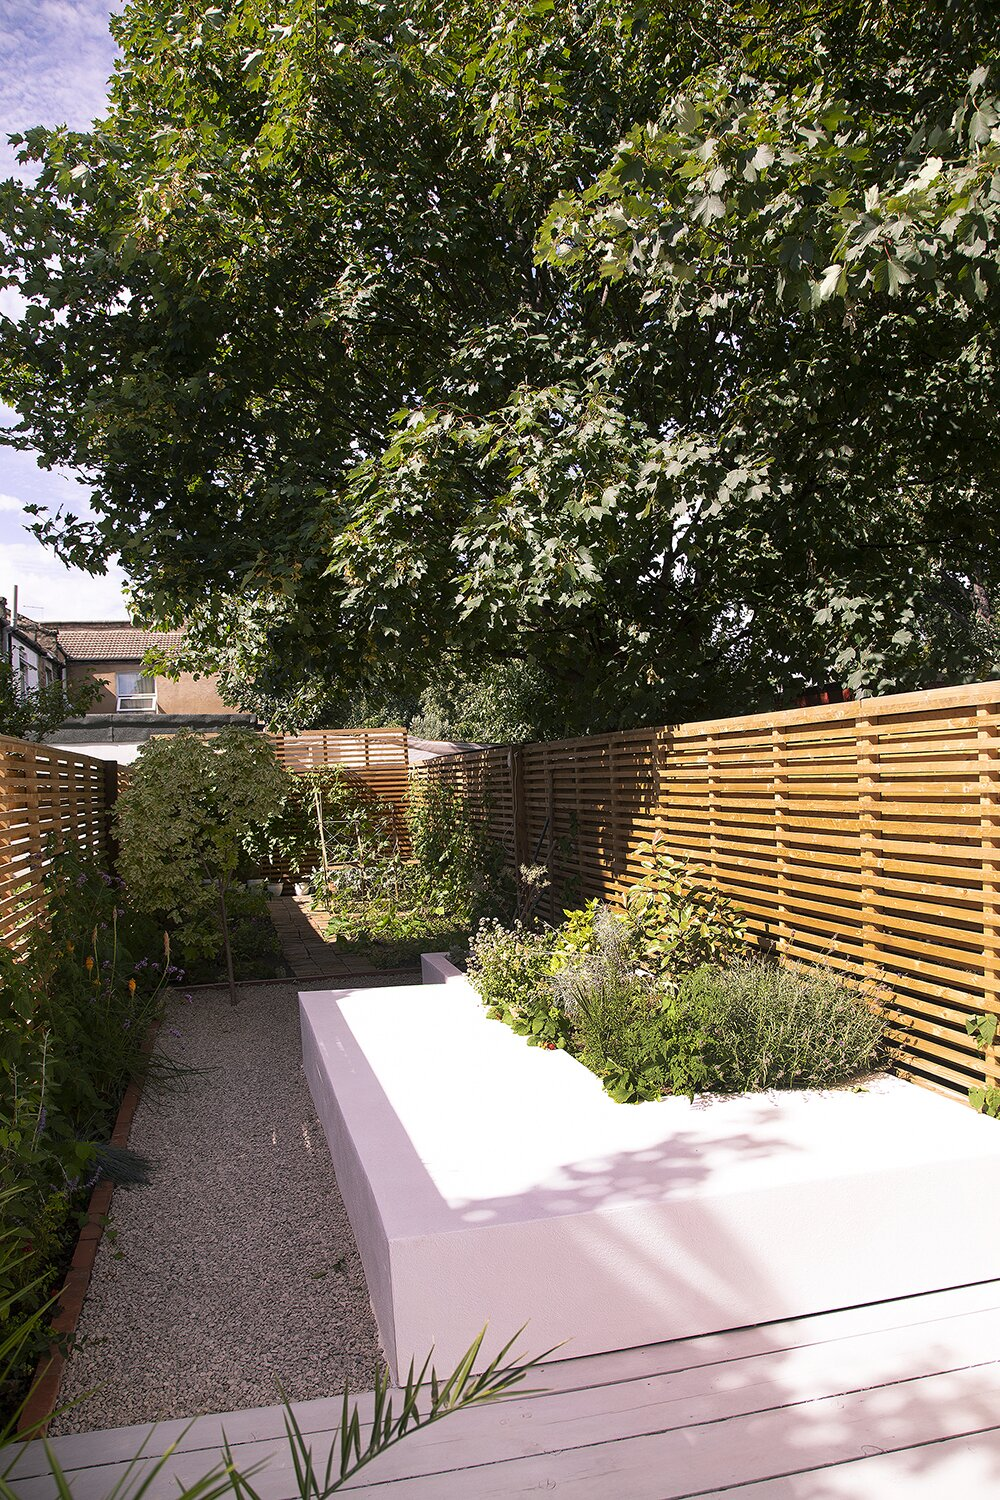 Outdoor, Garden, Landscape, Trees, Vegetables, Wood, Hardscapes, Flowers, Raised Planters, Wood, and Shrubs Garden  Outdoor Vegetables Landscape Wood Garden Photos from Studio Cottage